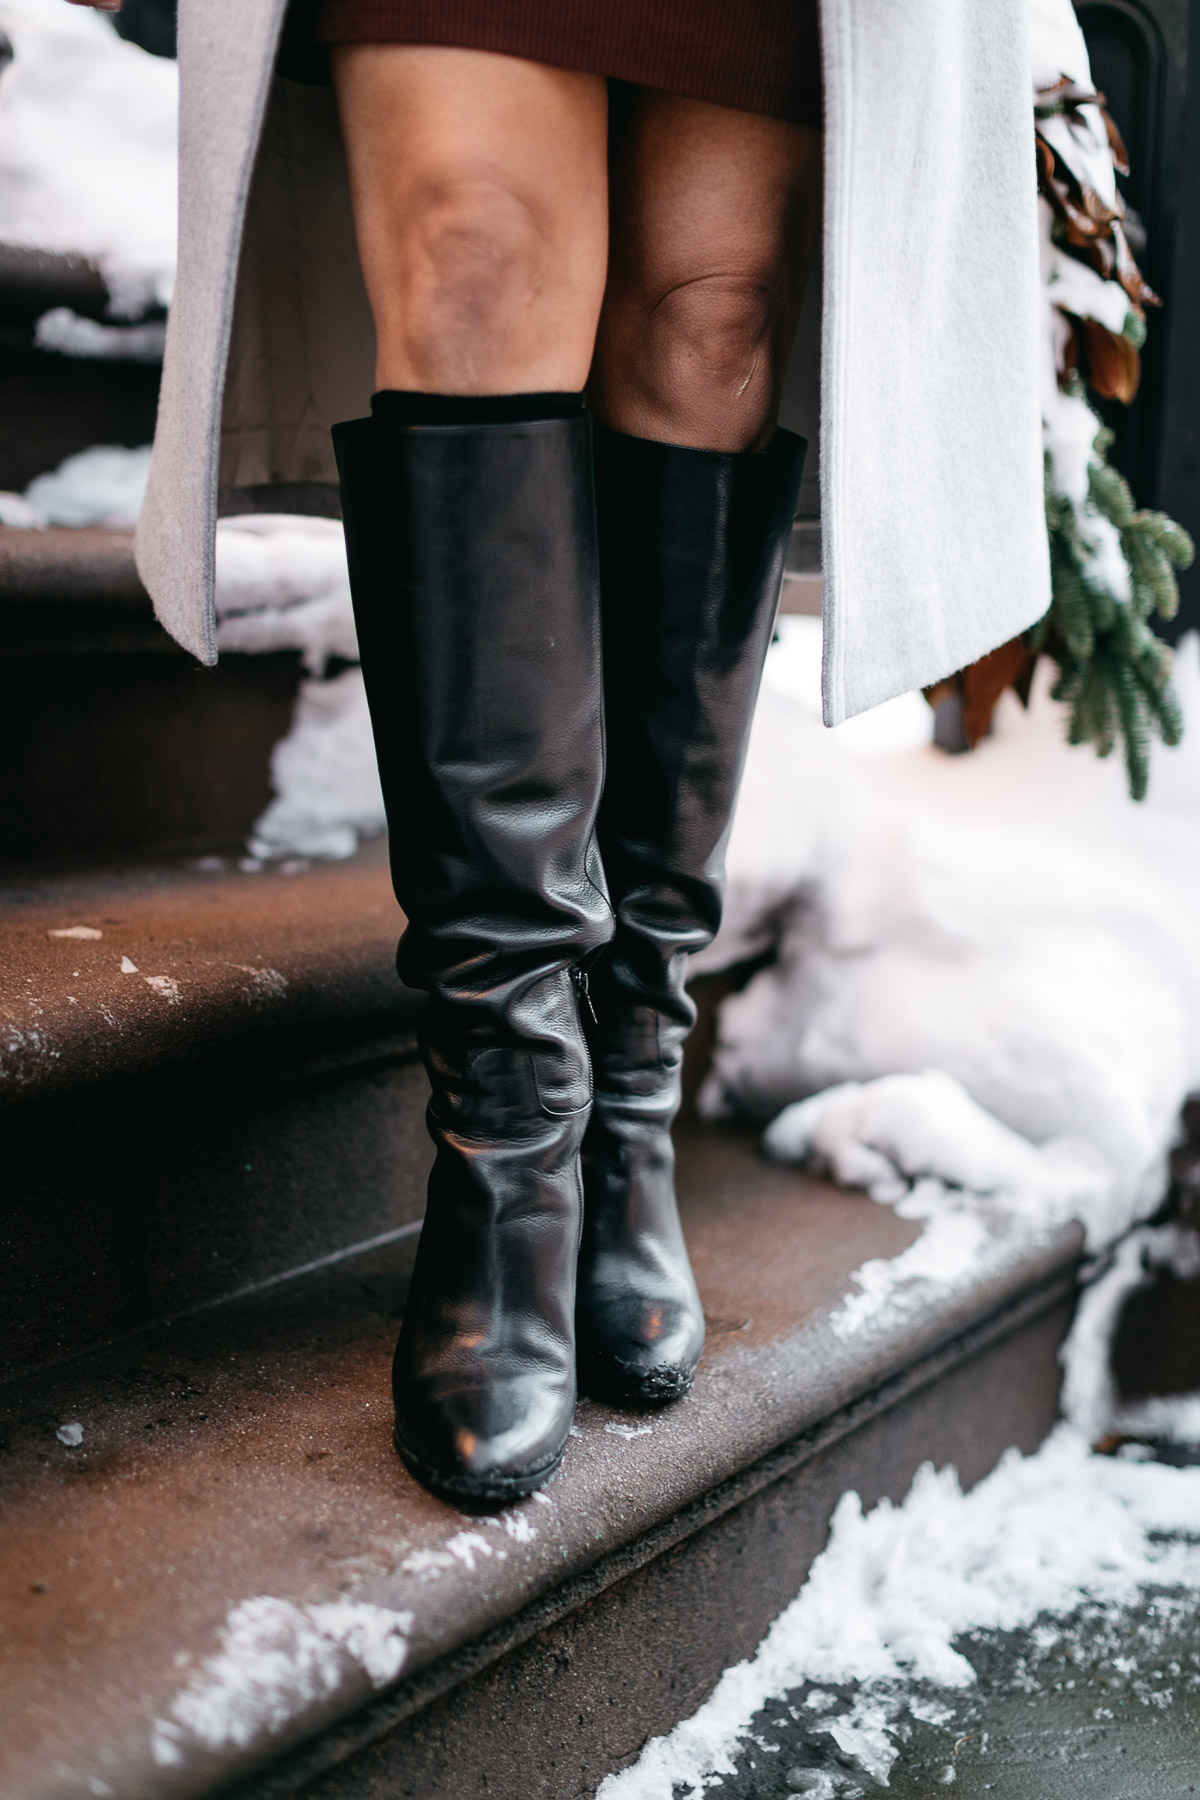 MGemi Pendolo black boots are styled by Amanda of A Glam Lifestyle blog and brings out her best NYFW street style